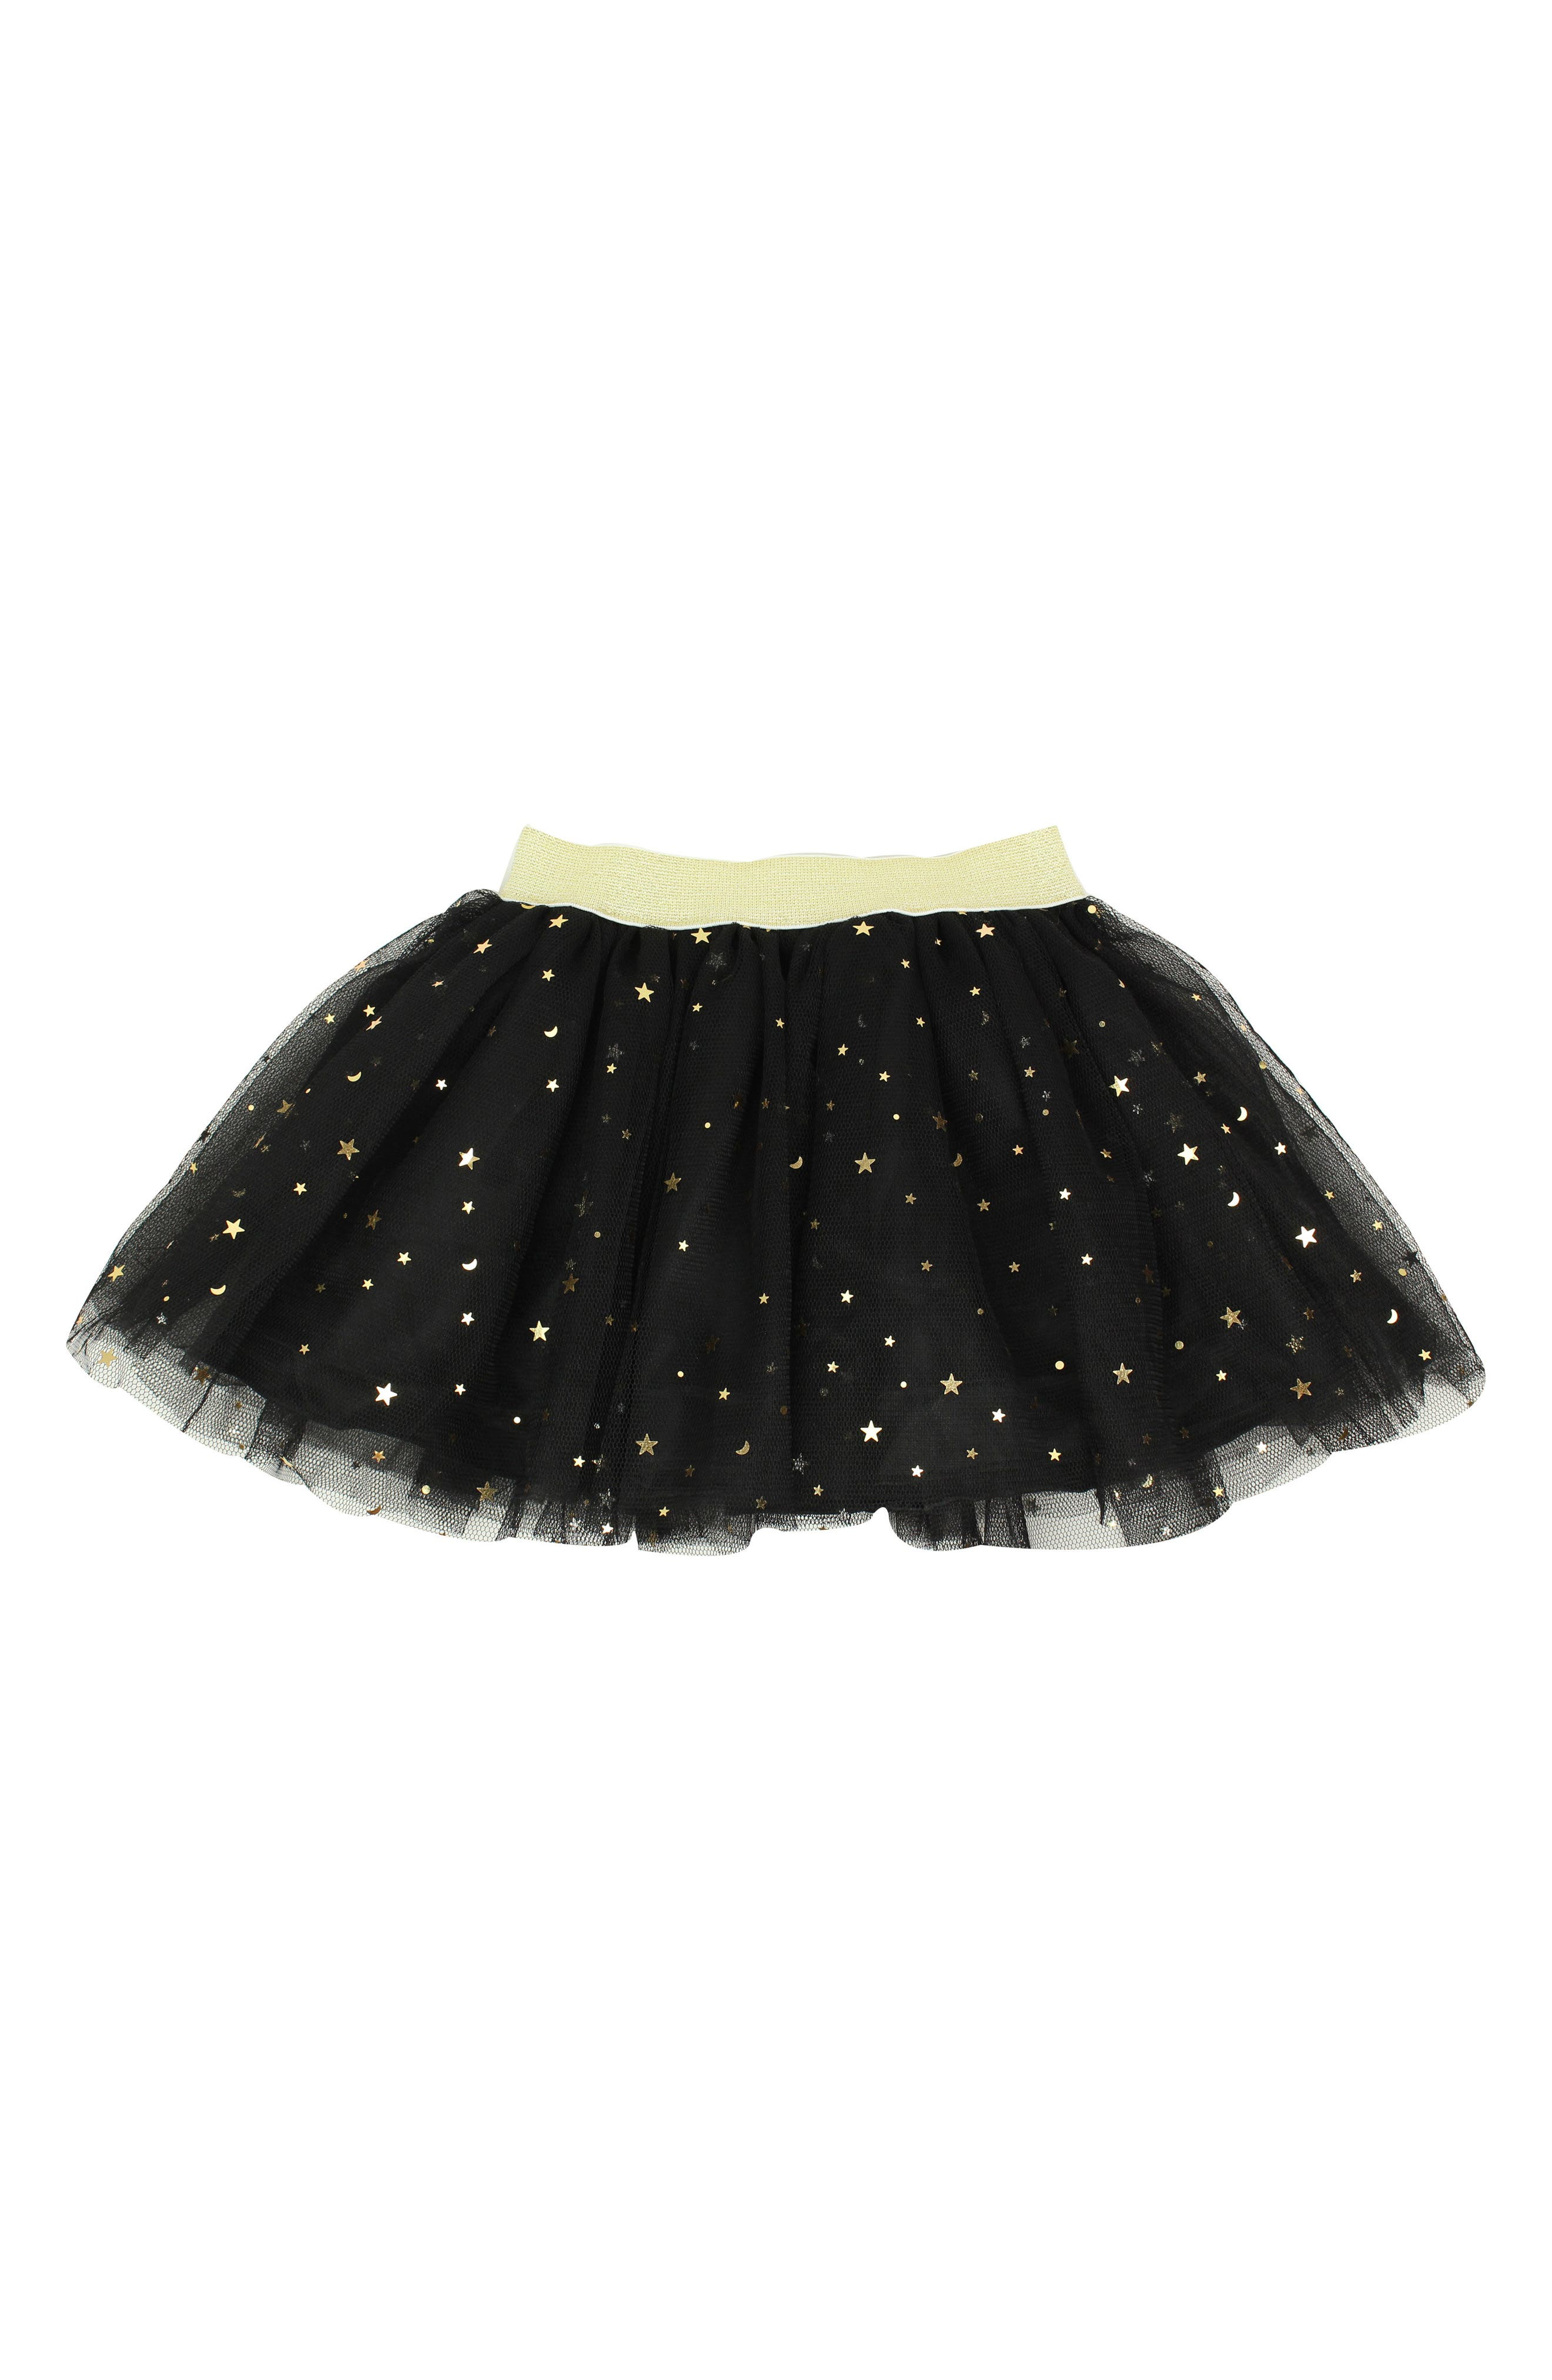 POPATU Metallic Star Tulle Skirt, Main, color, BLACK